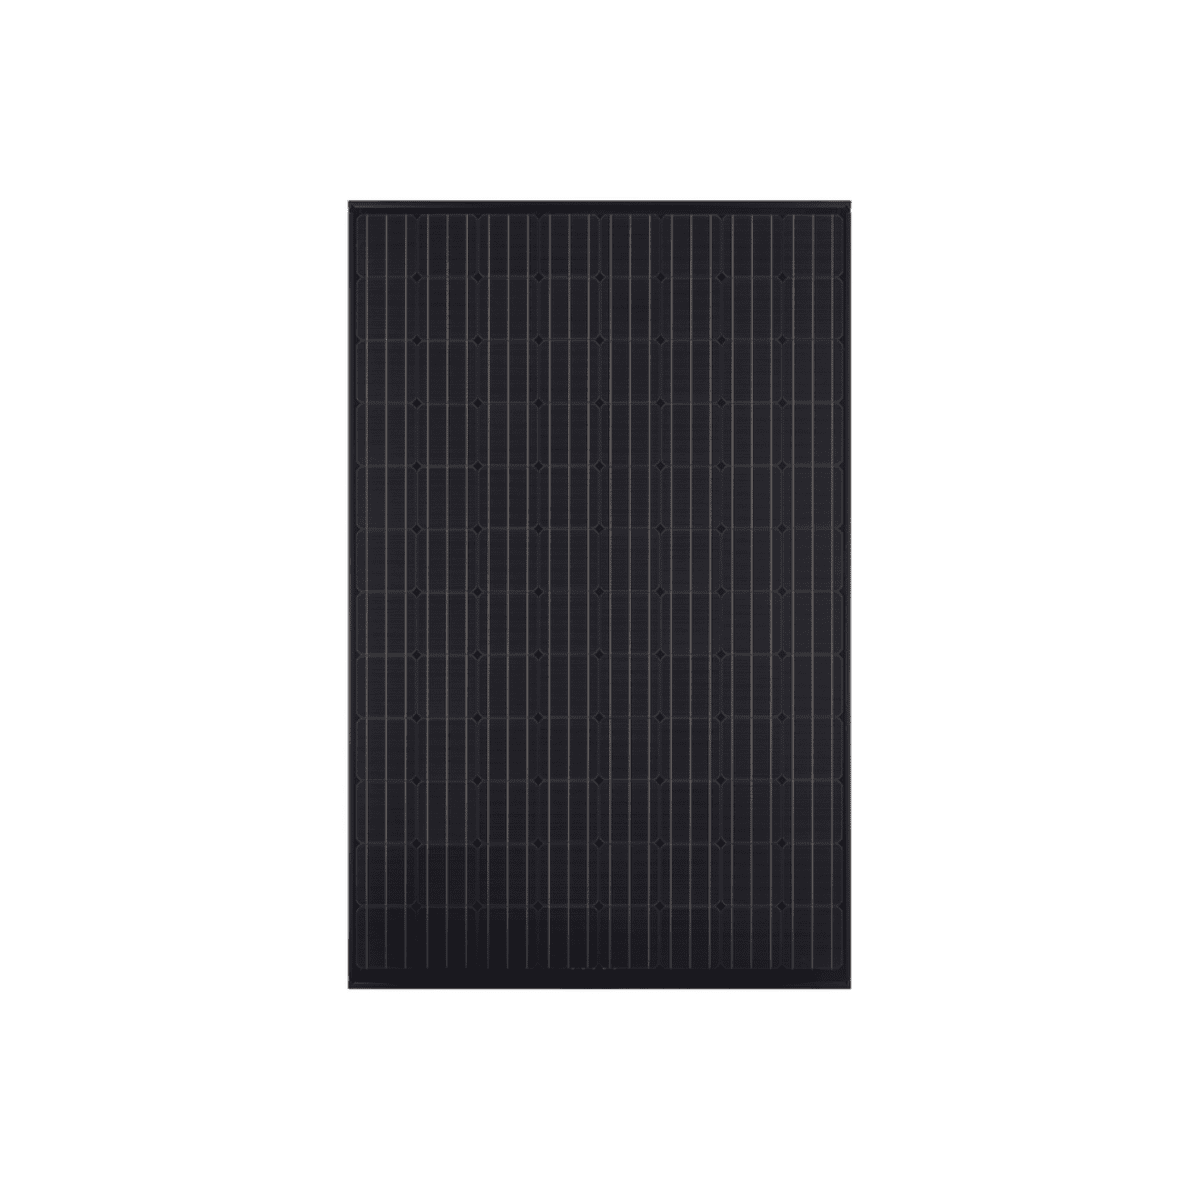 Panasonic HIT N330K Black KURO 330W Solar Panel VBHN330KJ01 fro sale